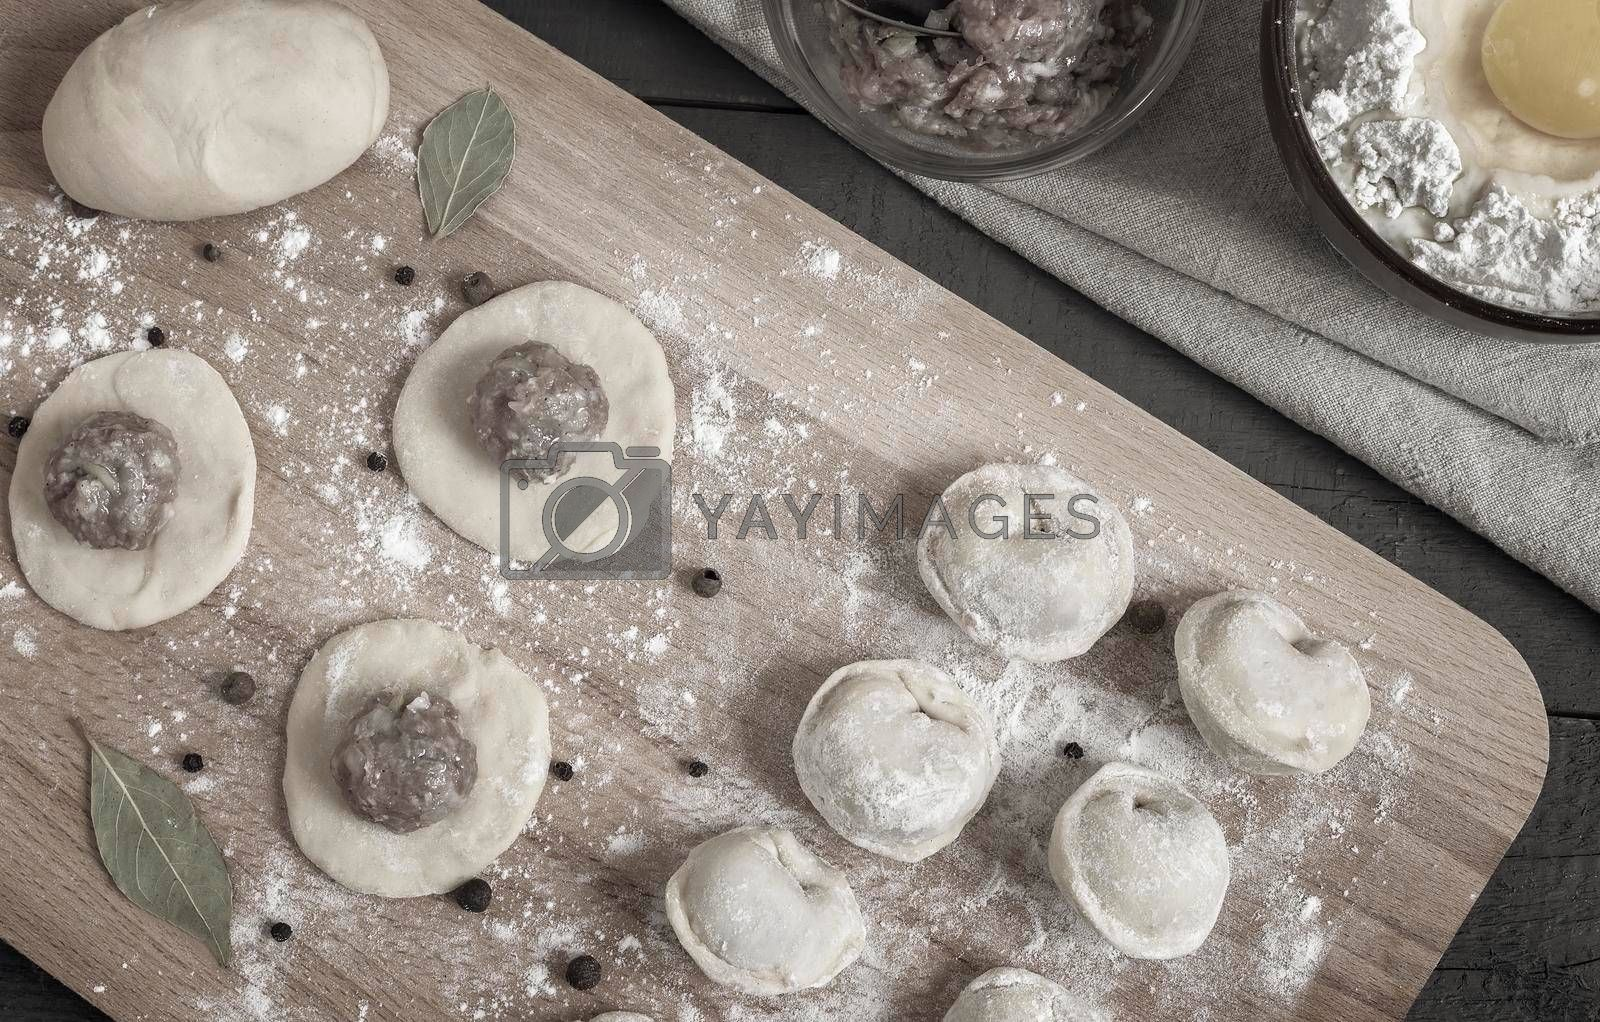 Cooking homemade dumplings, Russian dumplings with meat on a wooden table and ingredients for cooking. Rustic style. Top view with copy space. Flat lay